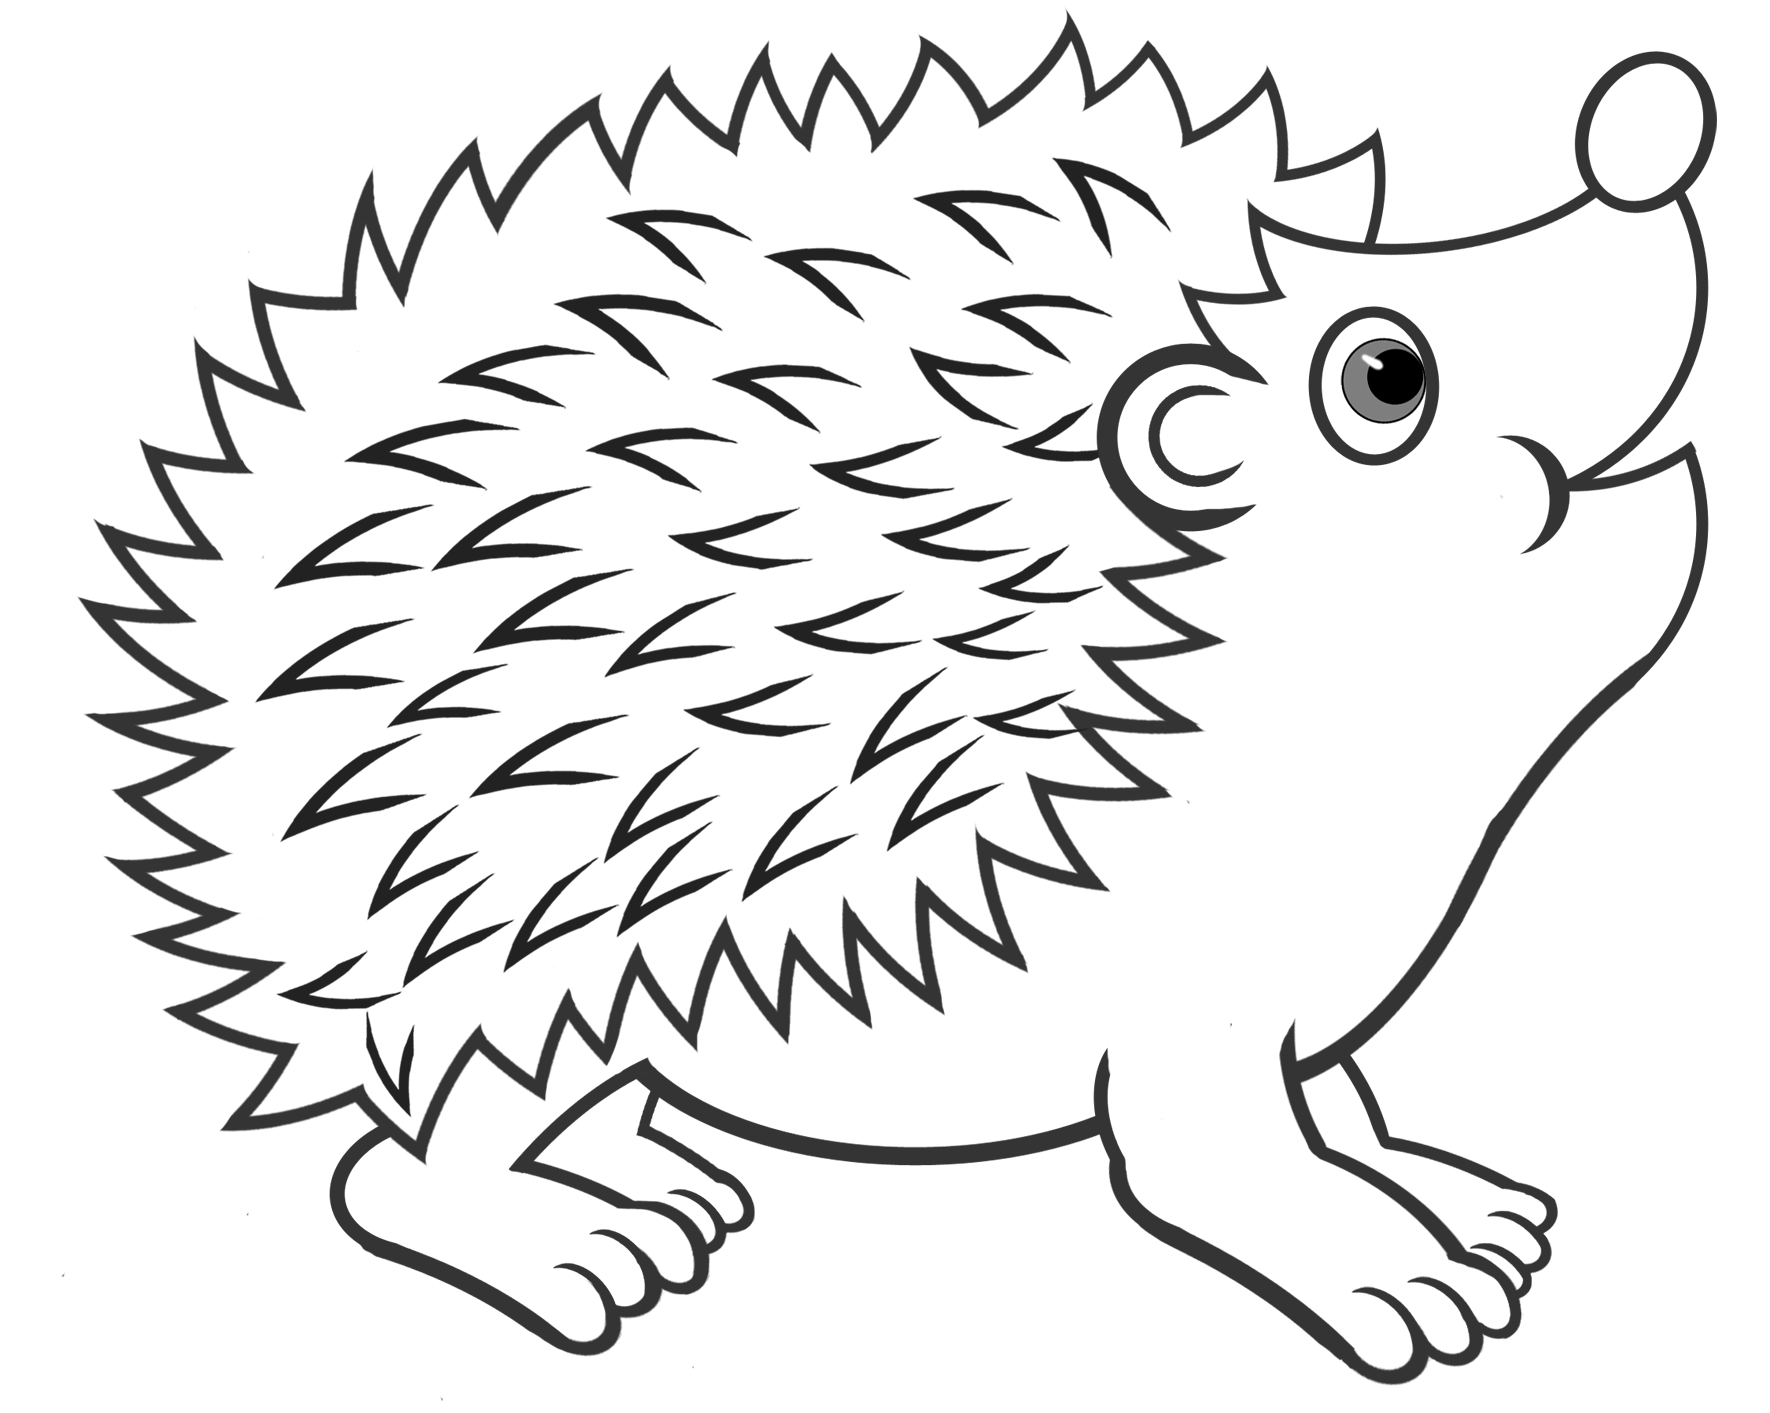 Hedgehog Coloring Pages - Best Coloring Pages For Kids